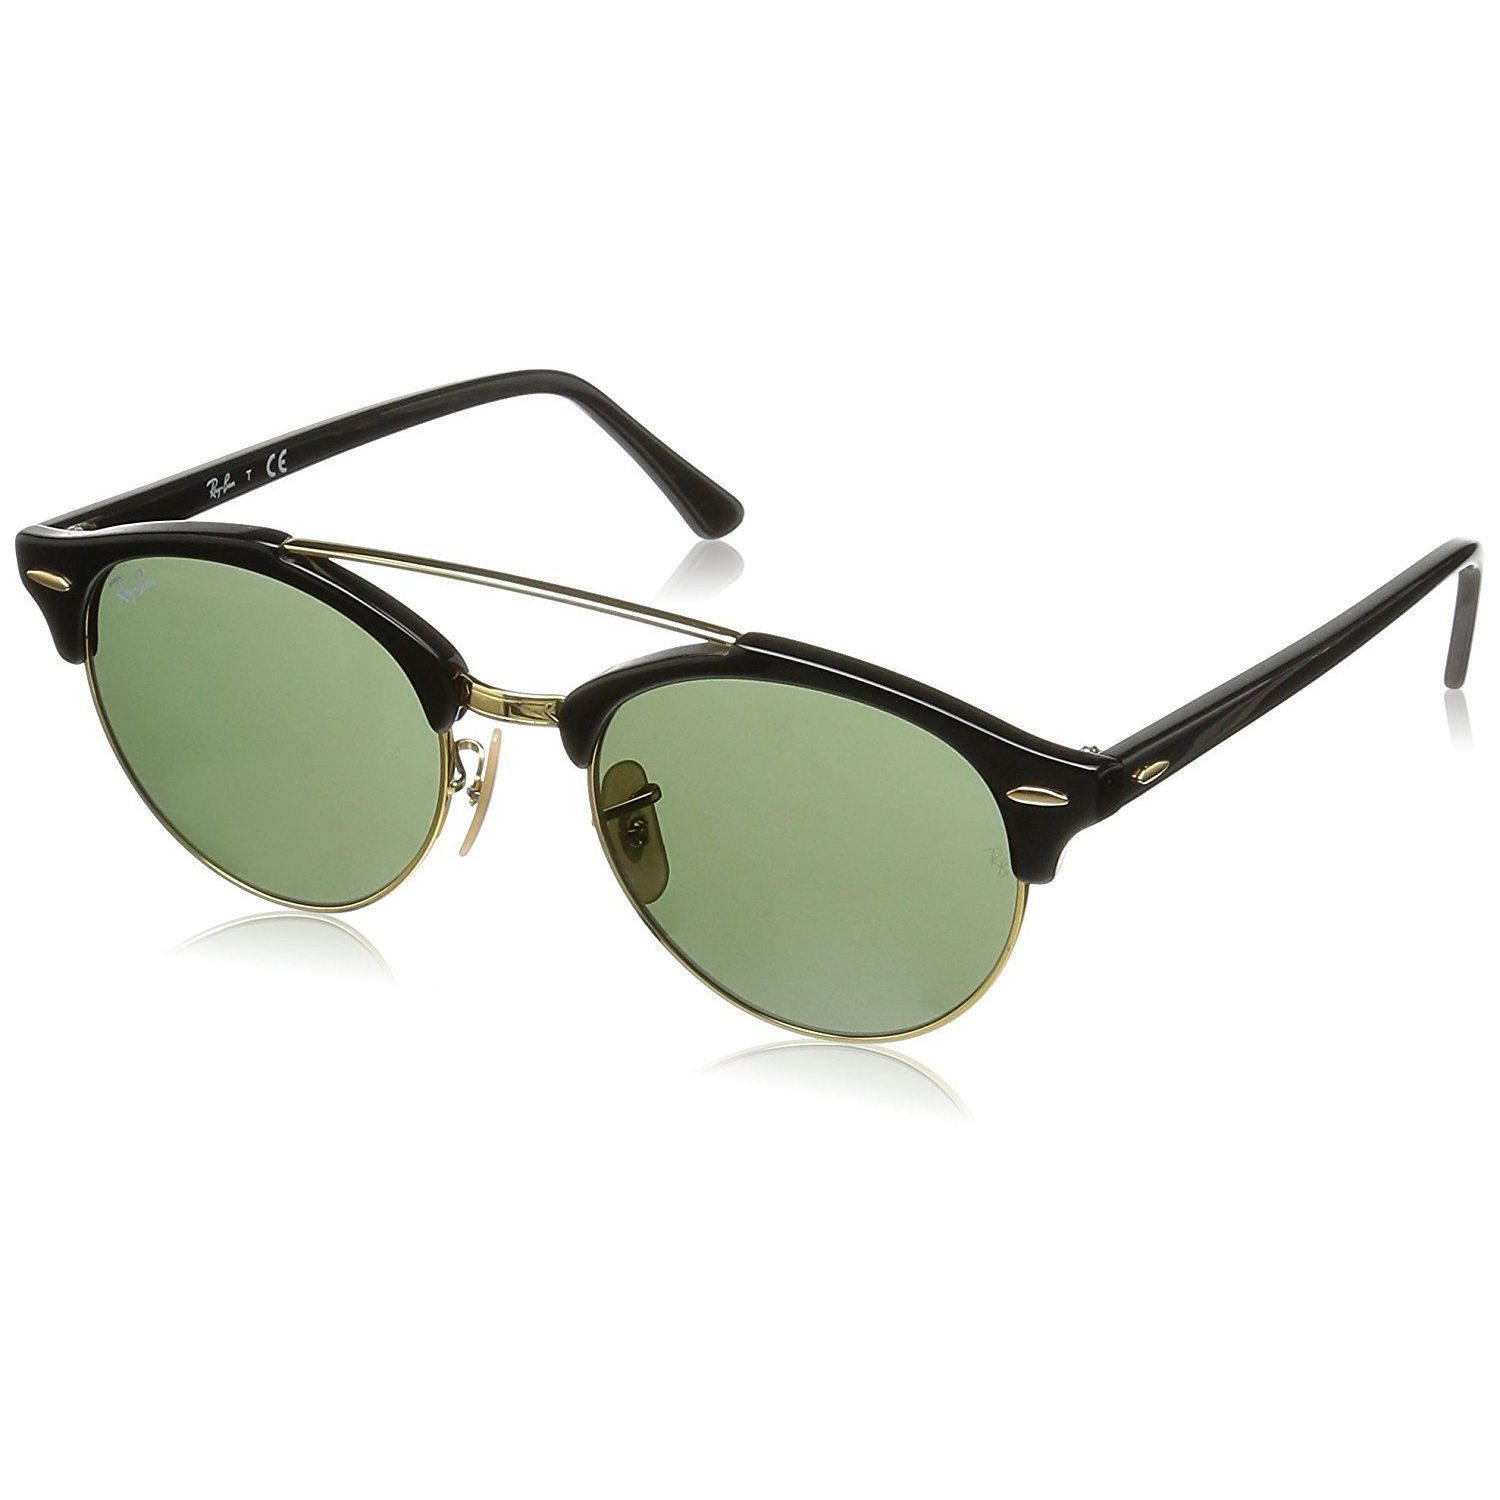 579e1935b0 Shop Ray-Ban Clubround Double Bridge RB4346 901 Men s Black Frame Green  Classic Lens Sunglasses - Free Shipping Today - Overstock - 15287226